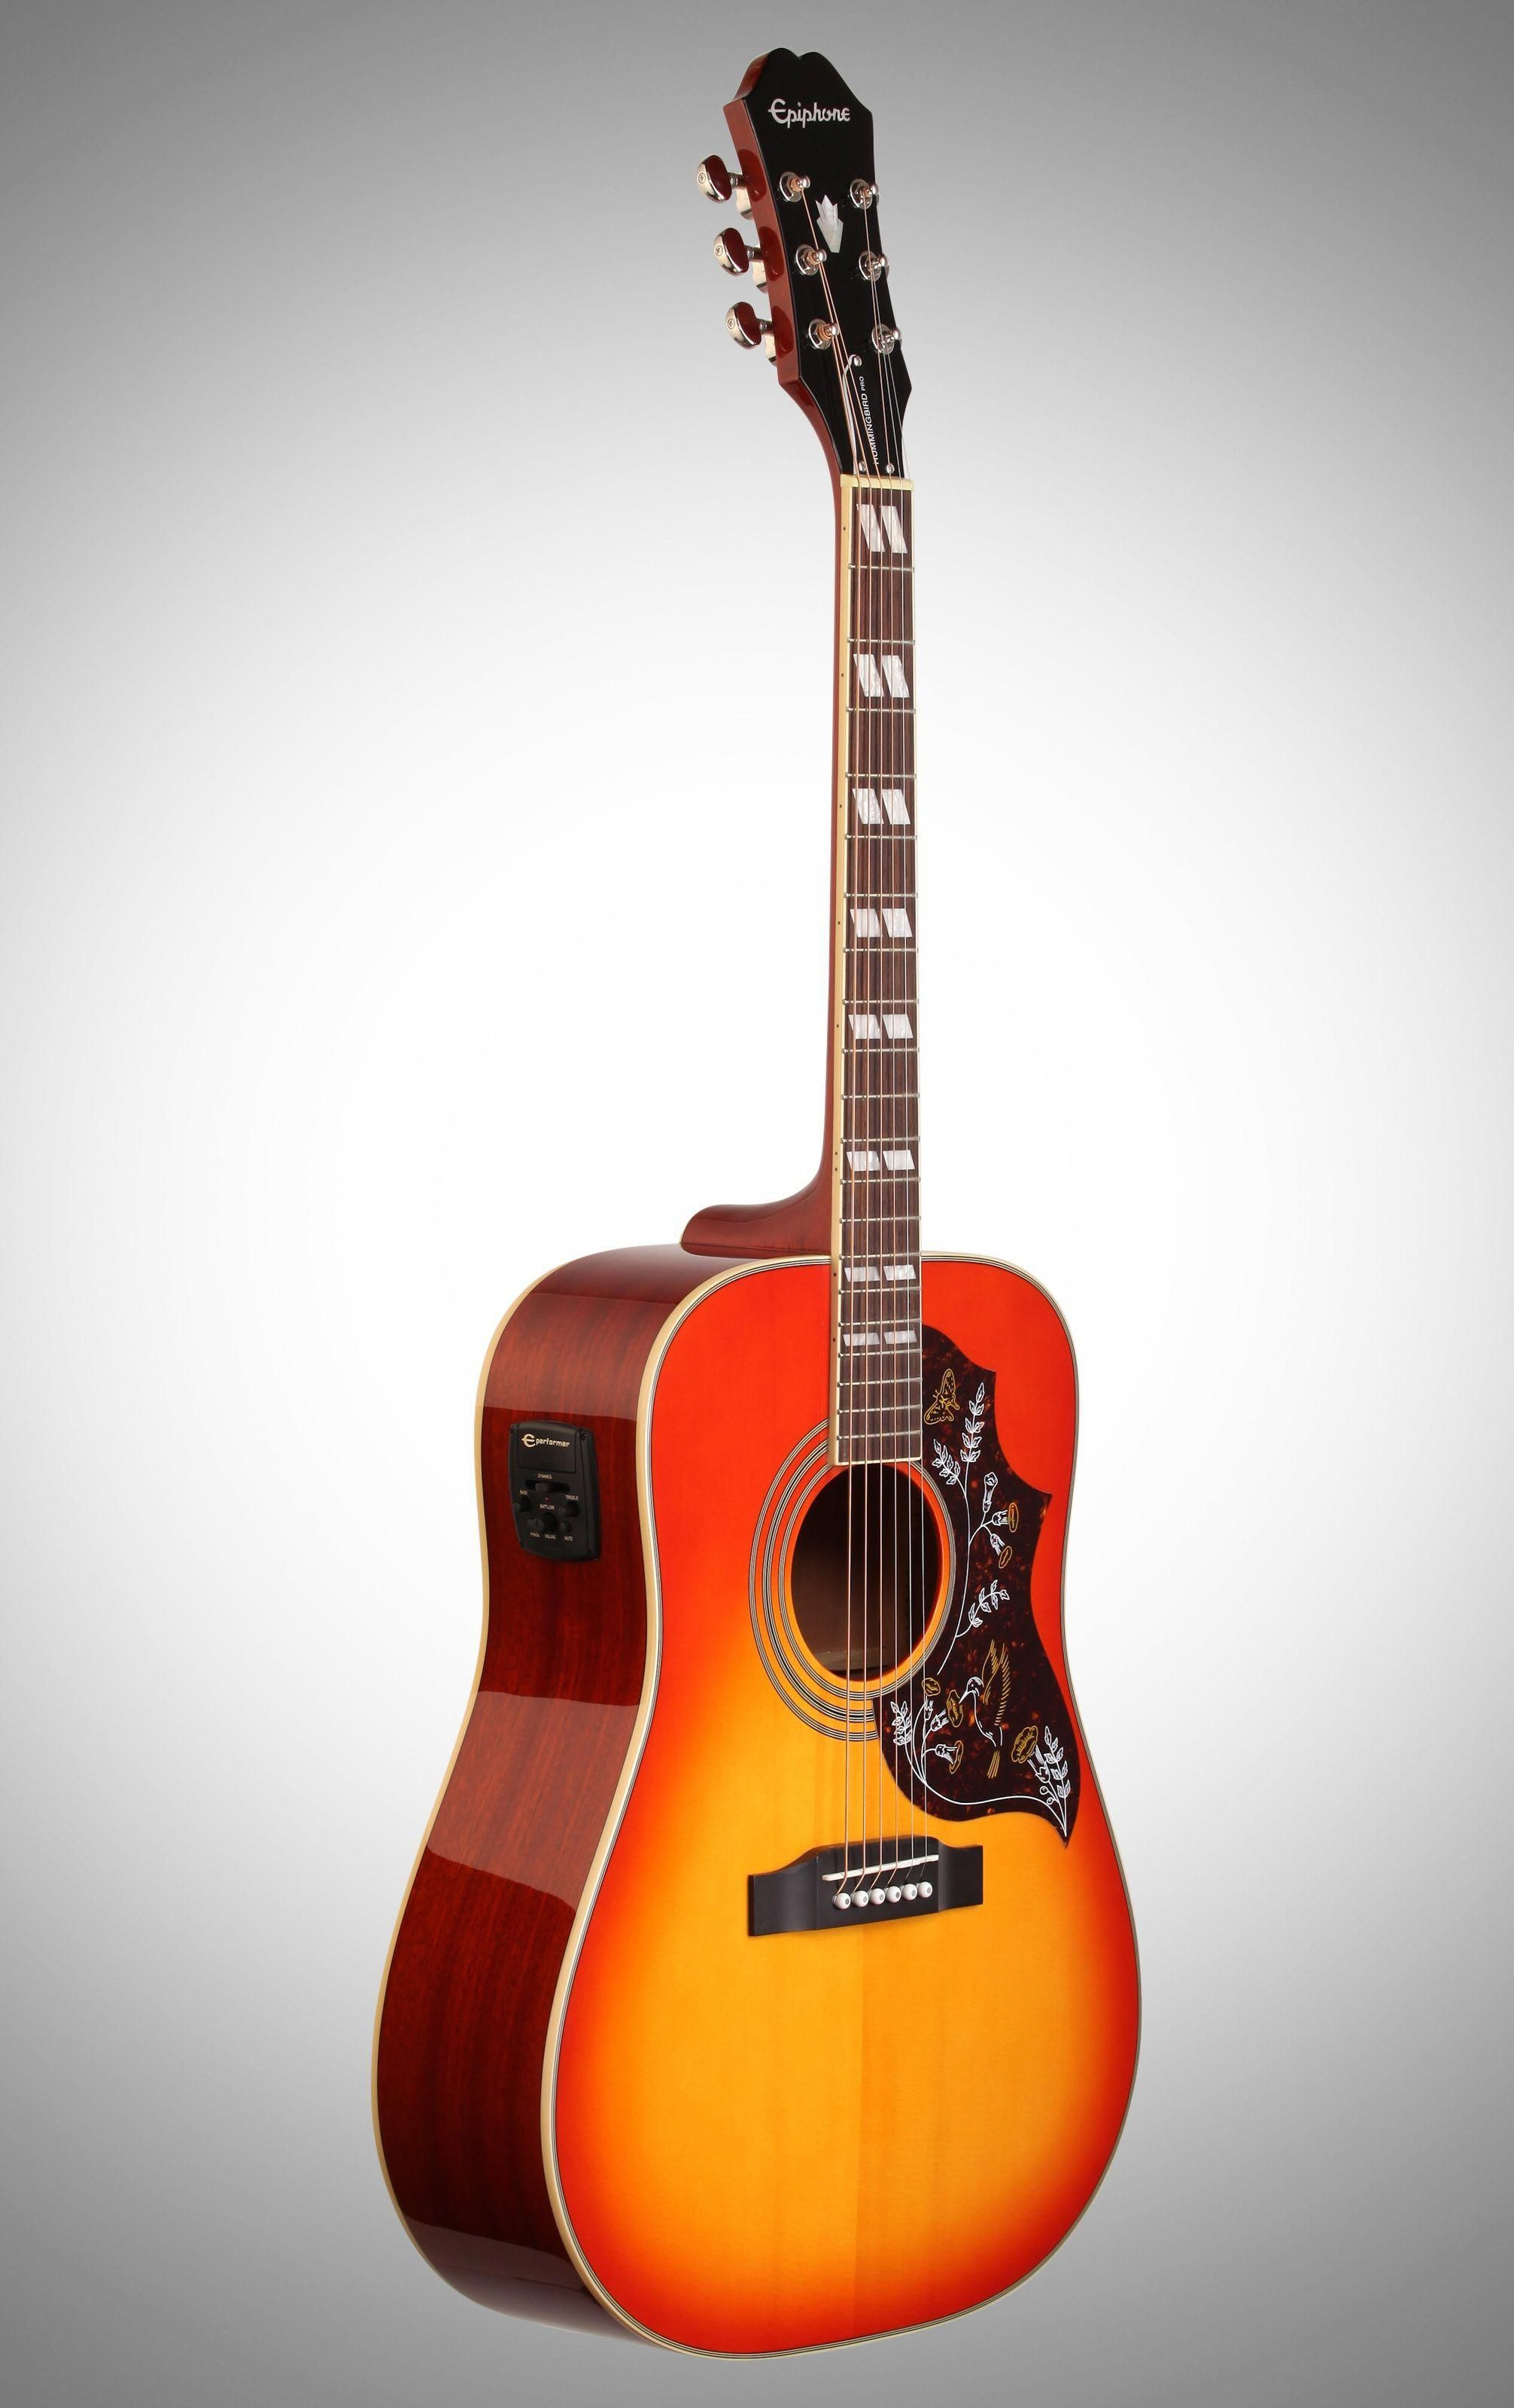 22 Awesome Acoustic Guitar For Kids Ages 5 9 Acoustic Guitar Guitar Epiphone